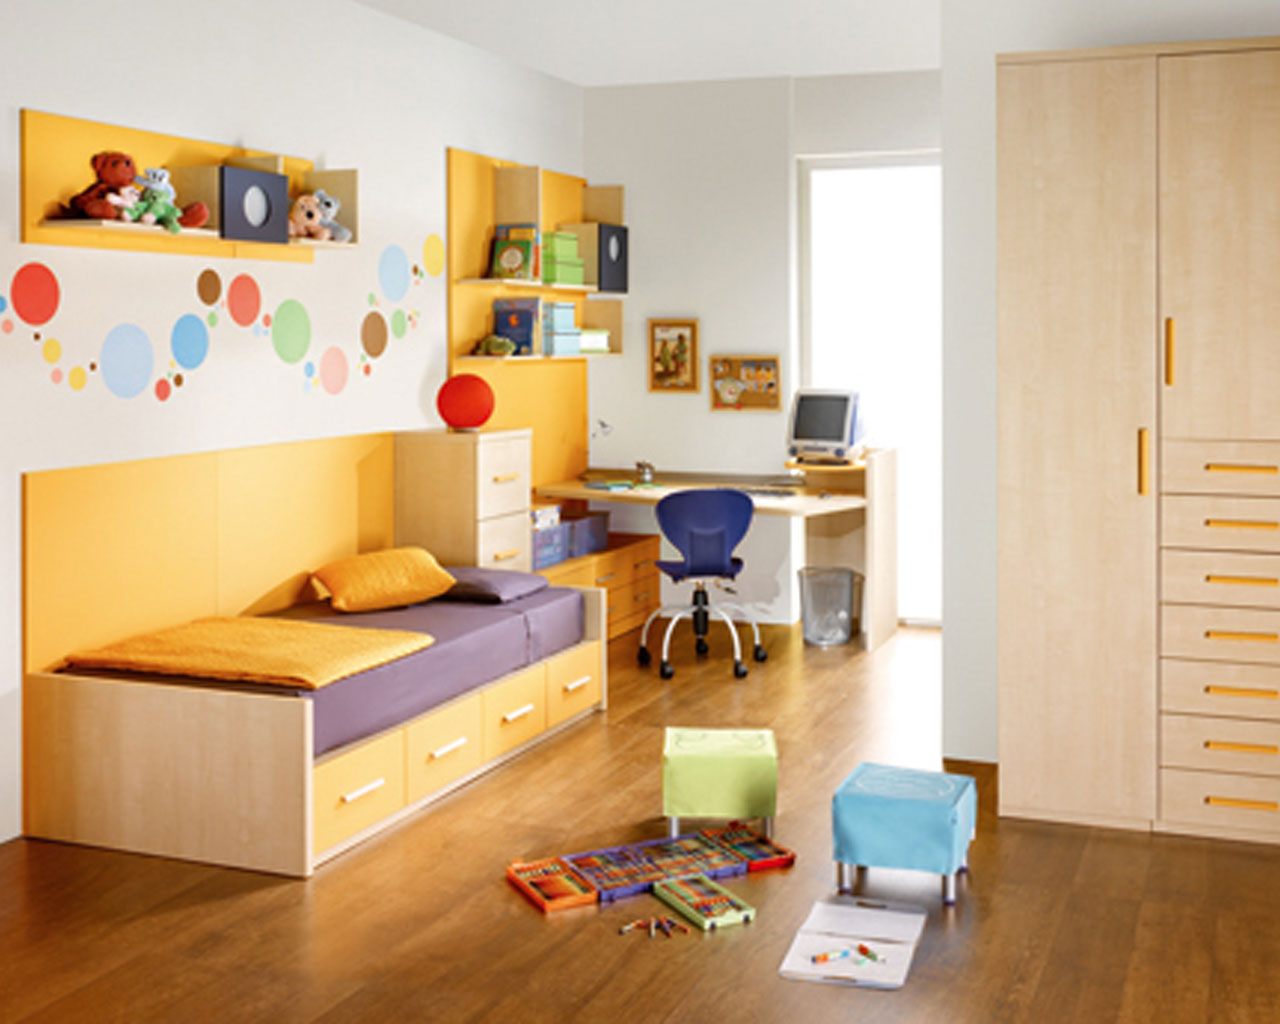 Kids room decor and design ideas as the easy yet effective - Child bedroom decor ...